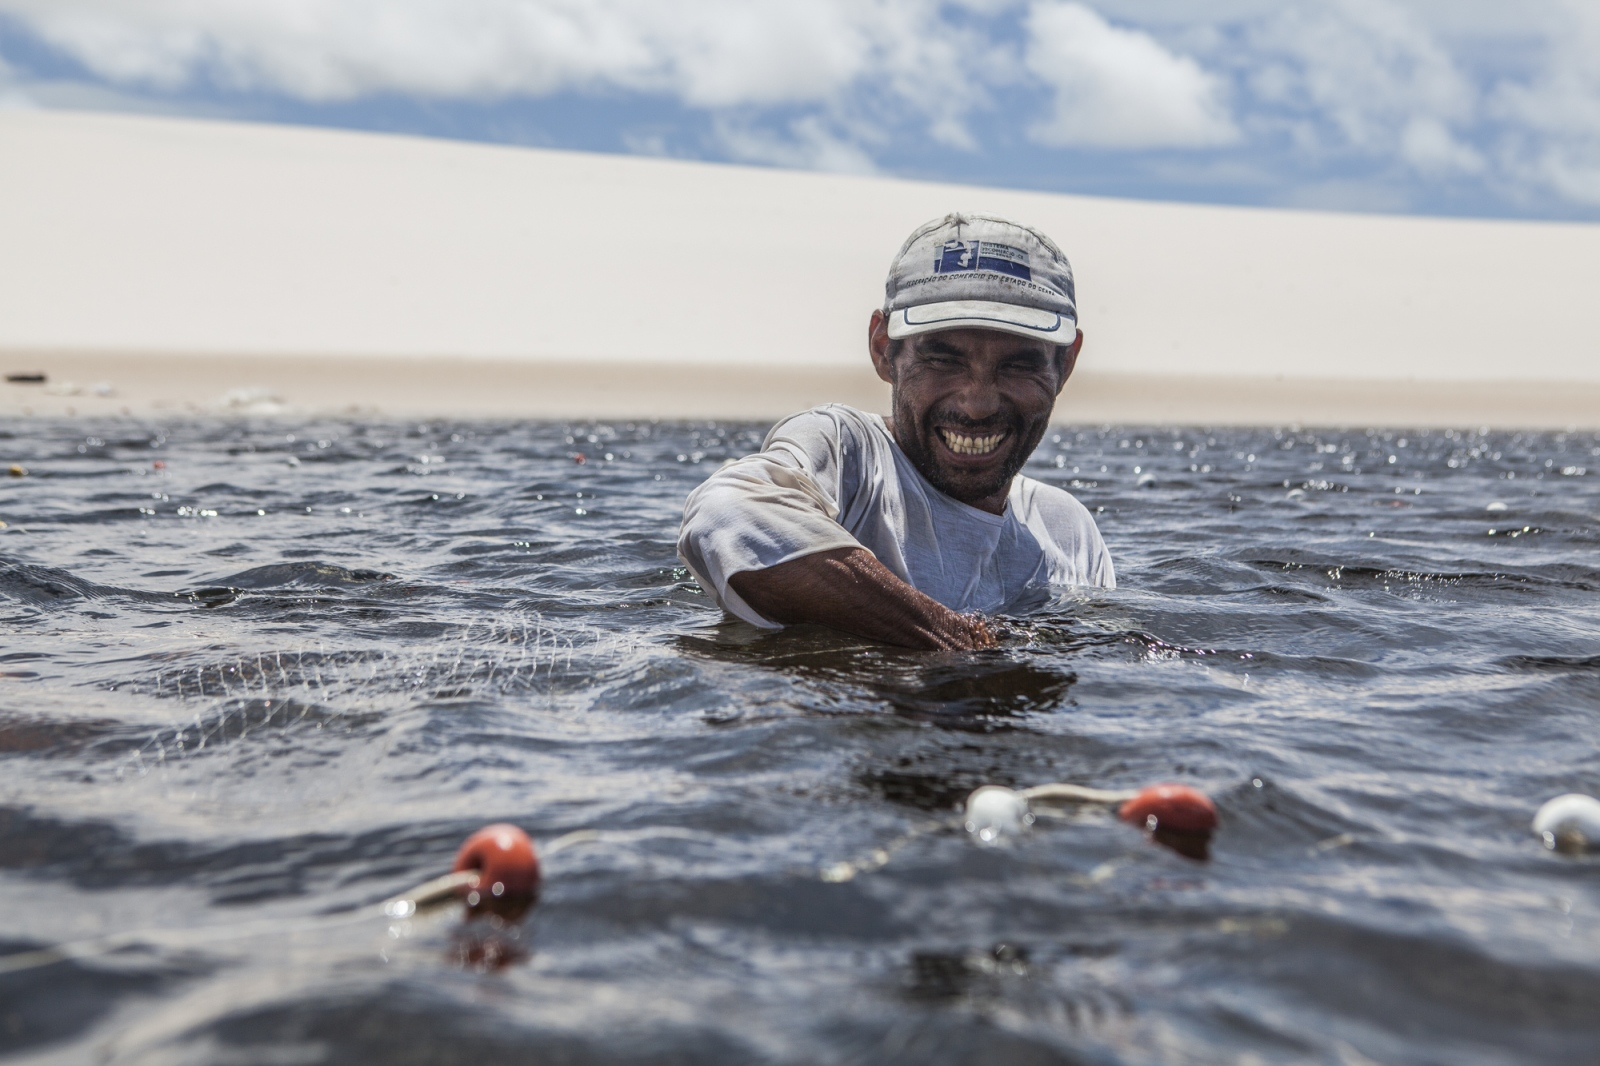 Aldemir Brito, 39, fishing in one of the lagoons close to his house in Queimada dos Britos. They live of fishing, which is two hours away. In the winter they breed fish on the lagoons, and cattle and goats that run free on the dunes. They have a small garden for farming but nothing major since they are afraid of the accelerating advance of the dunes that have already covered several houses.